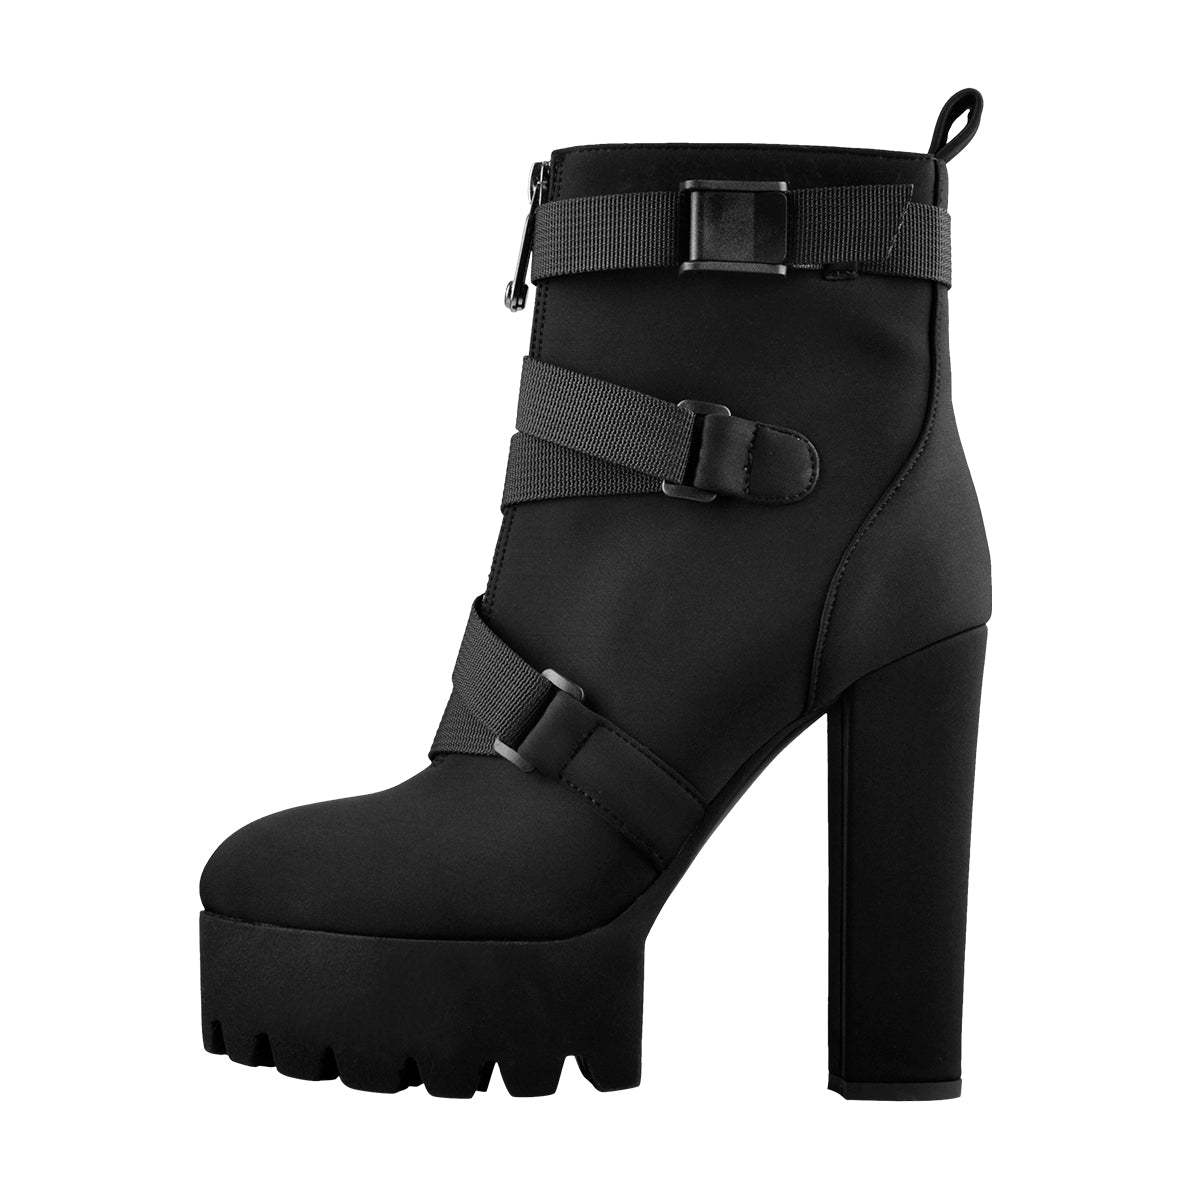 Platform Round Toe Zipper Strap Chunky High Heels Ankle Boots